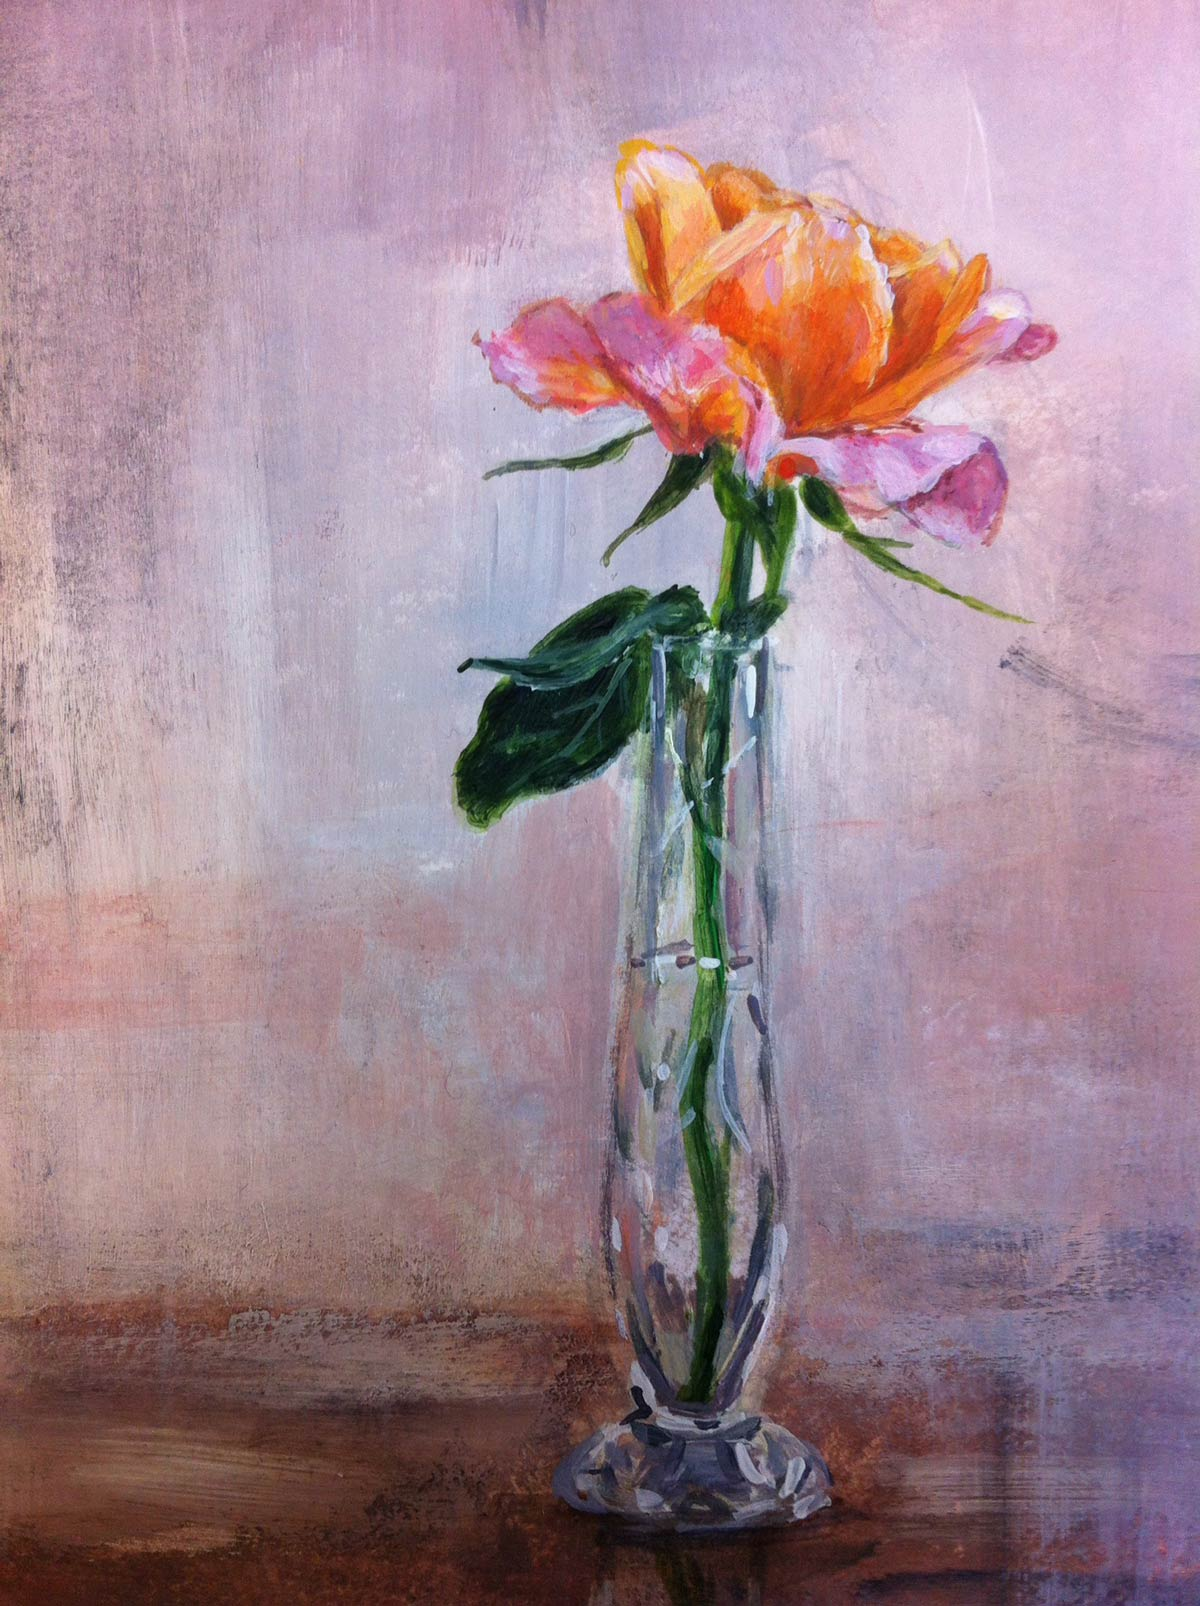 Cliff's rose in Mary's vase 15 x 10.5 cm